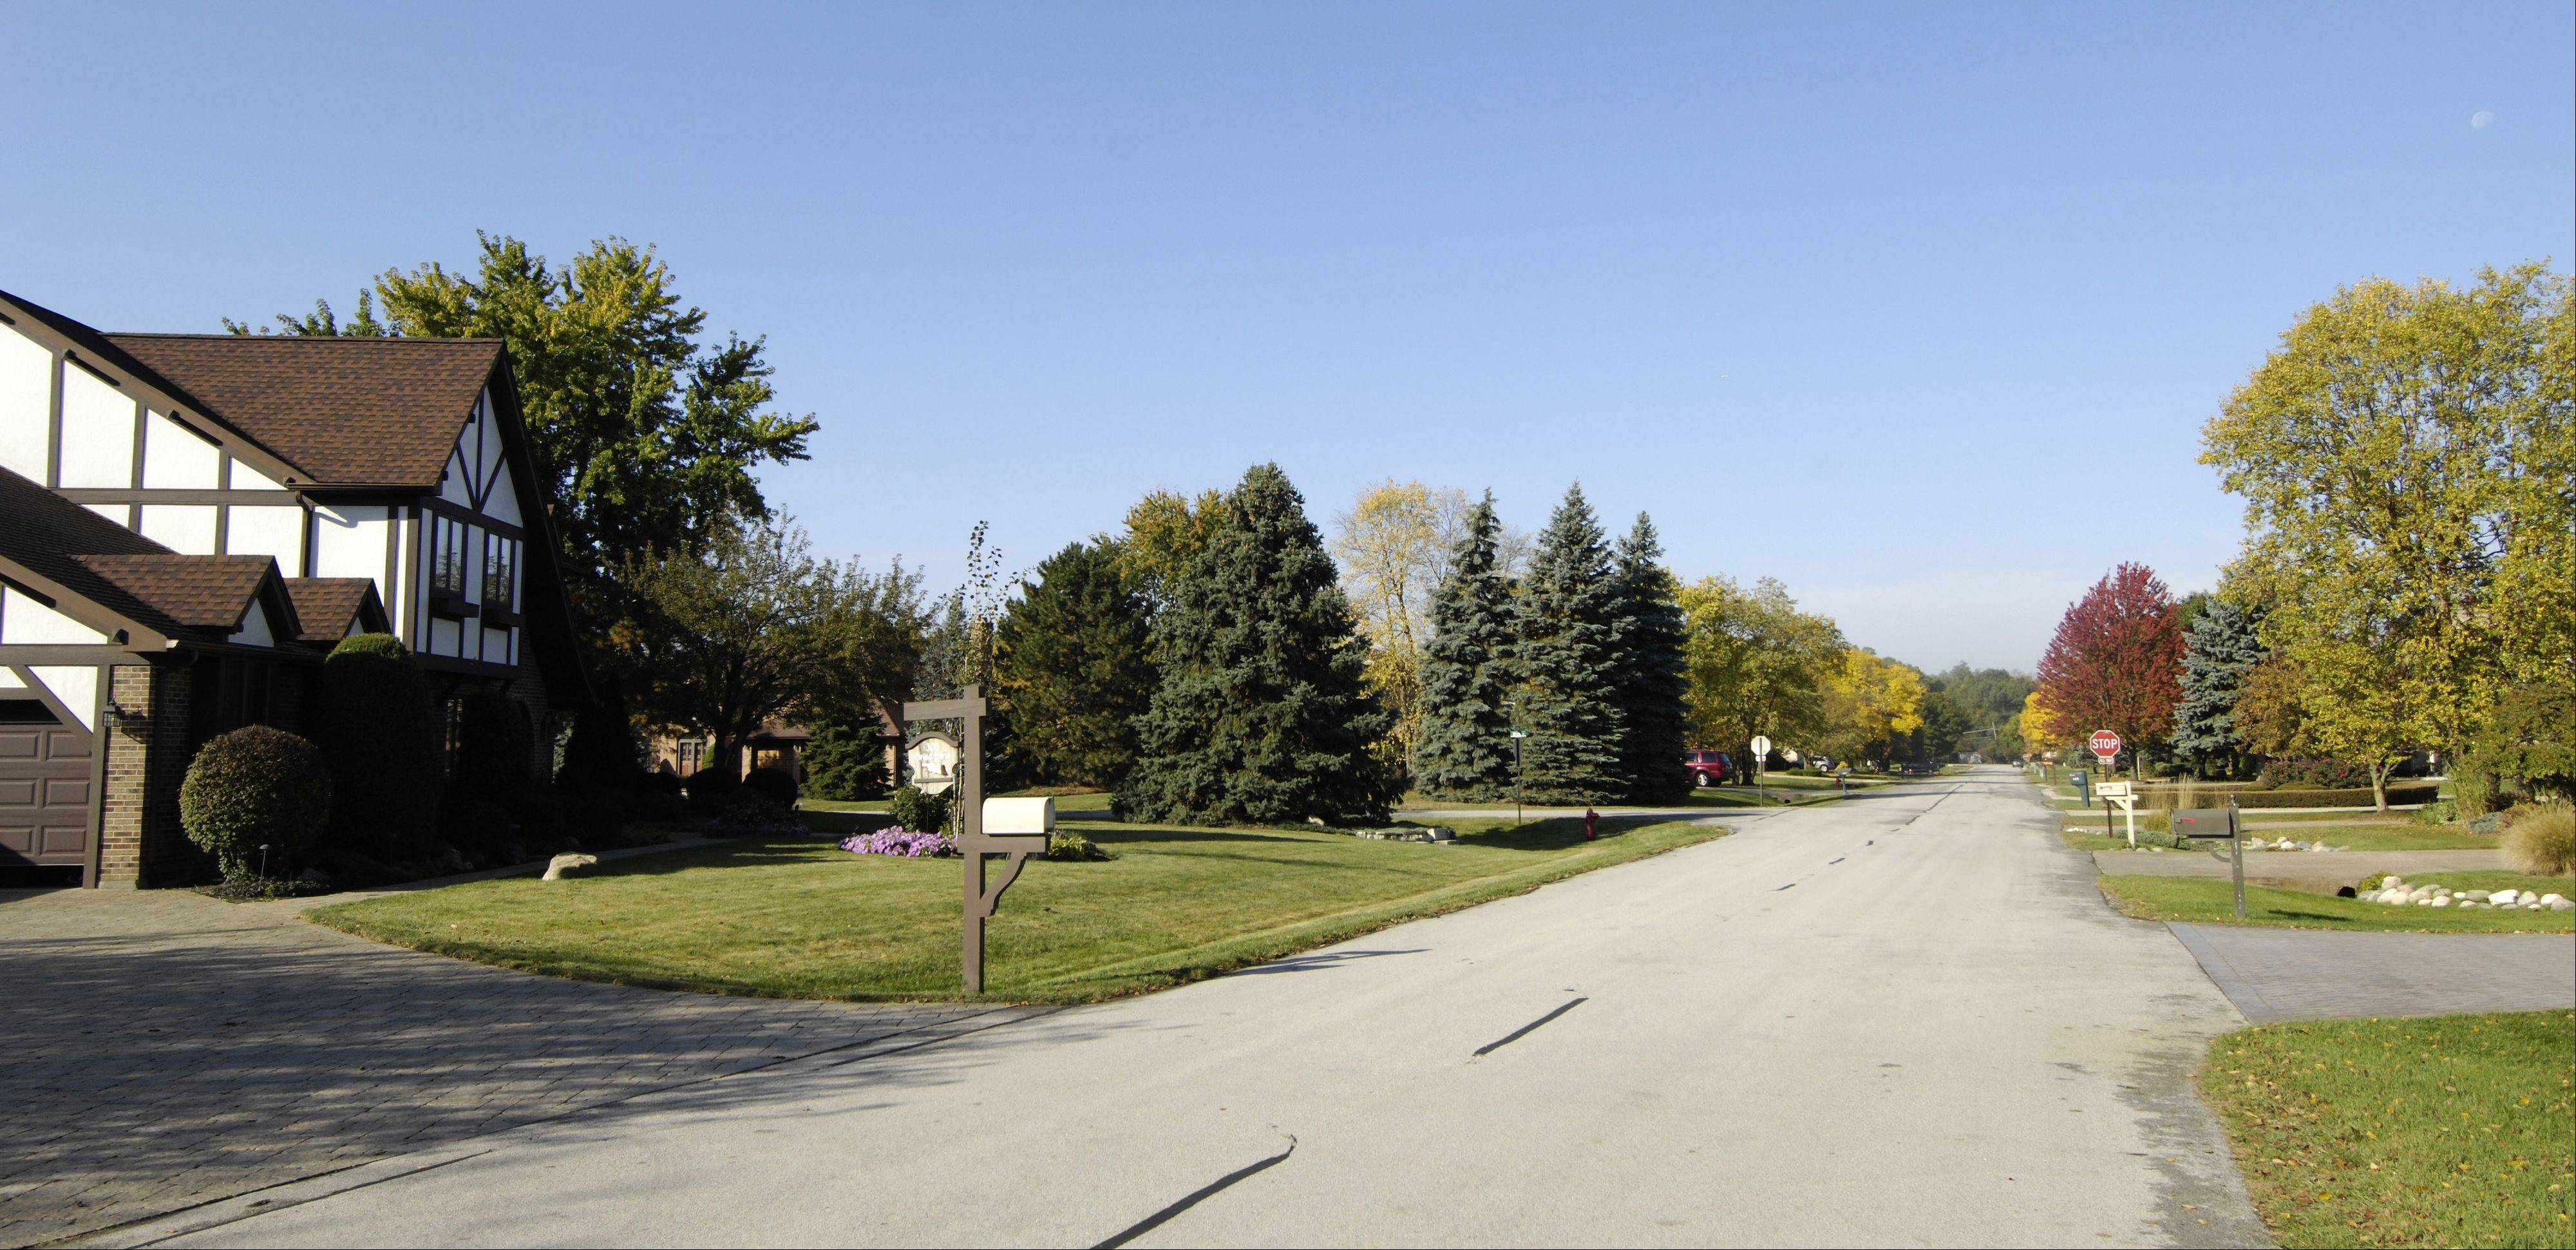 Residential lots in Lake Claire Estates are a minimum of one-half acre, which is larger than most suburban neighborhoods.